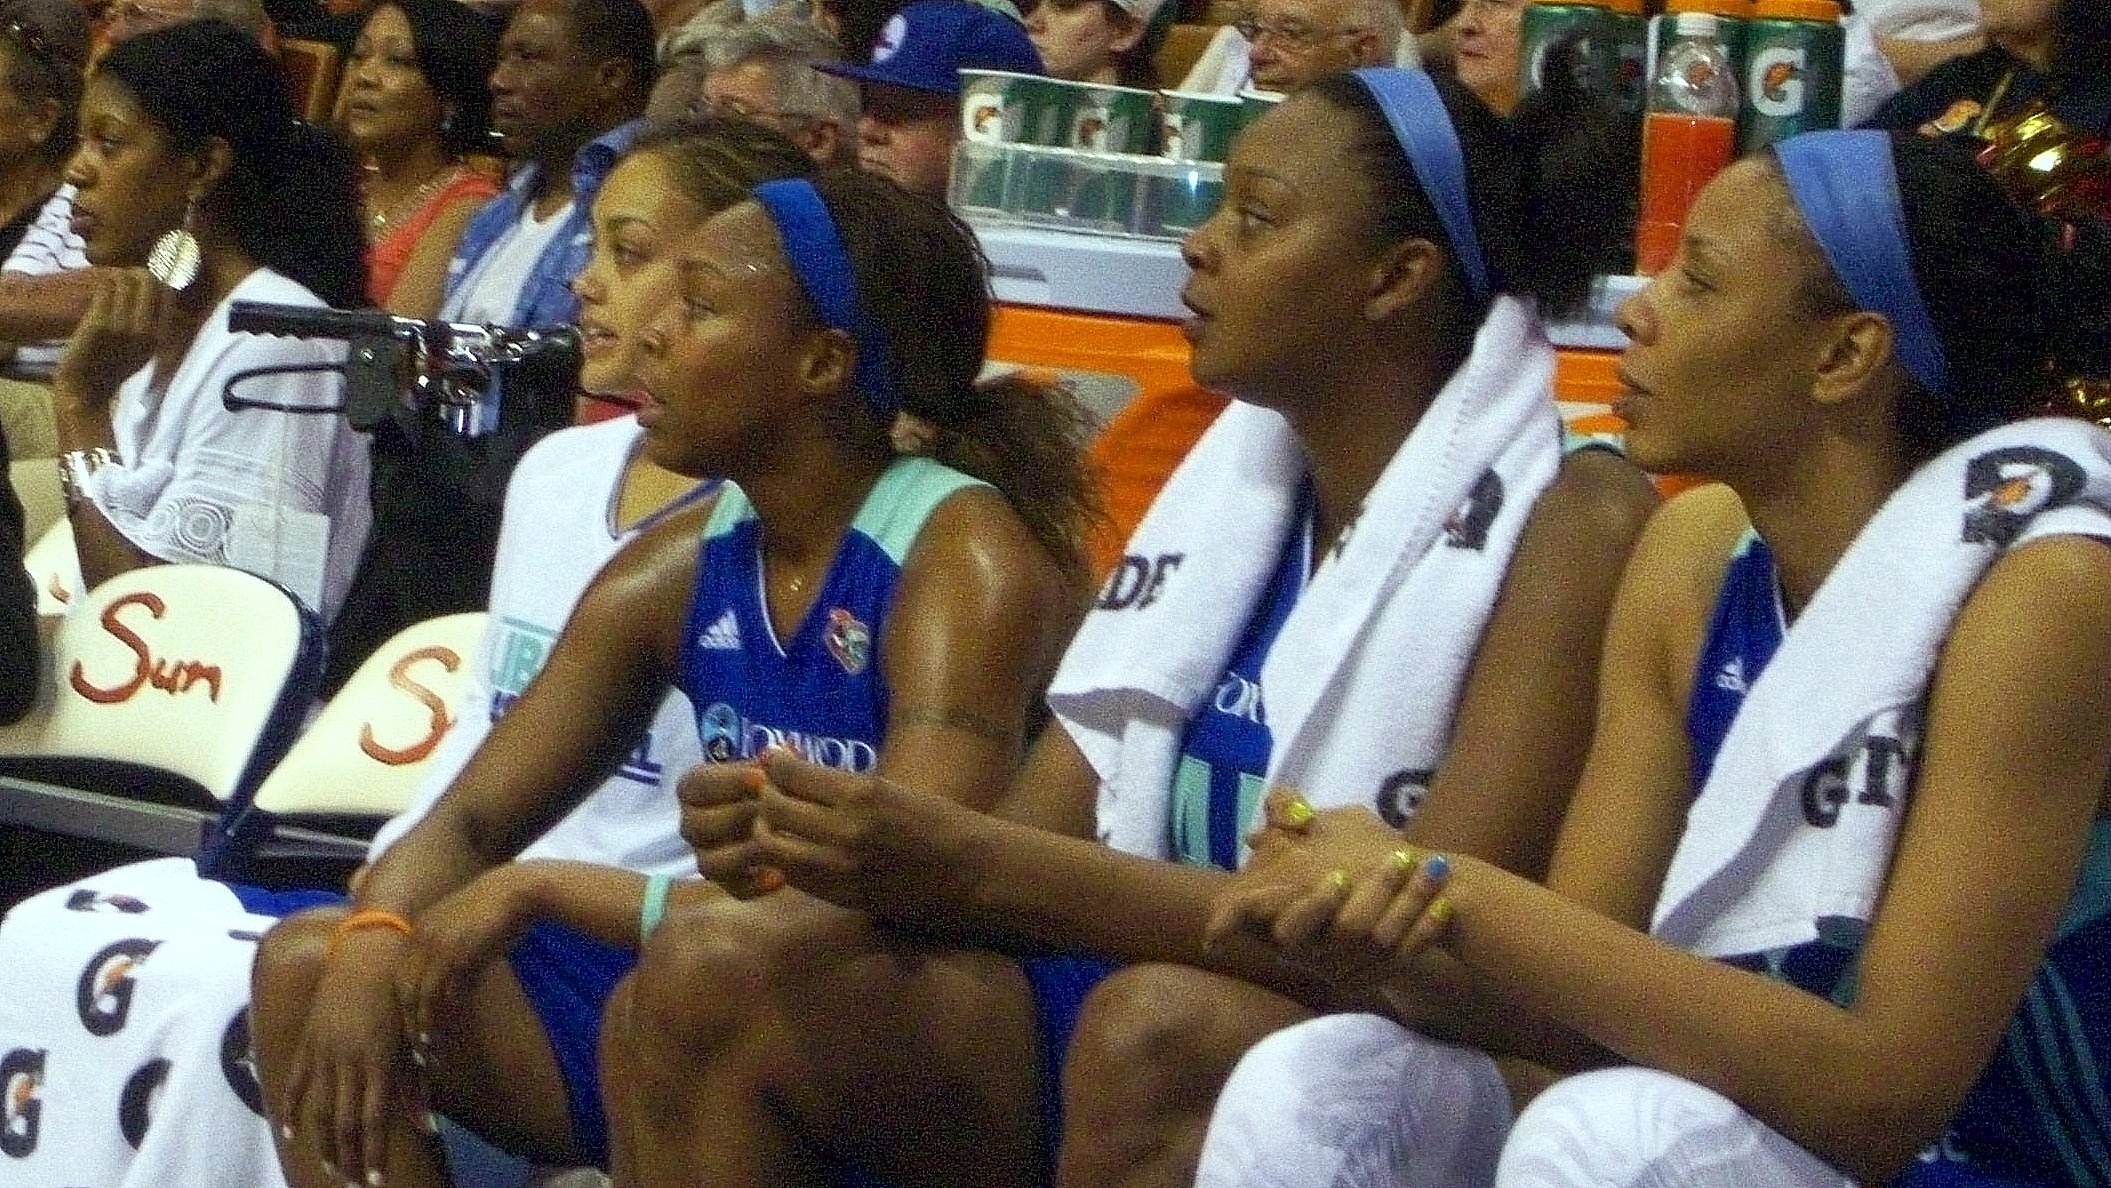 Weekend of losses gives New York Liberty more questions than answers